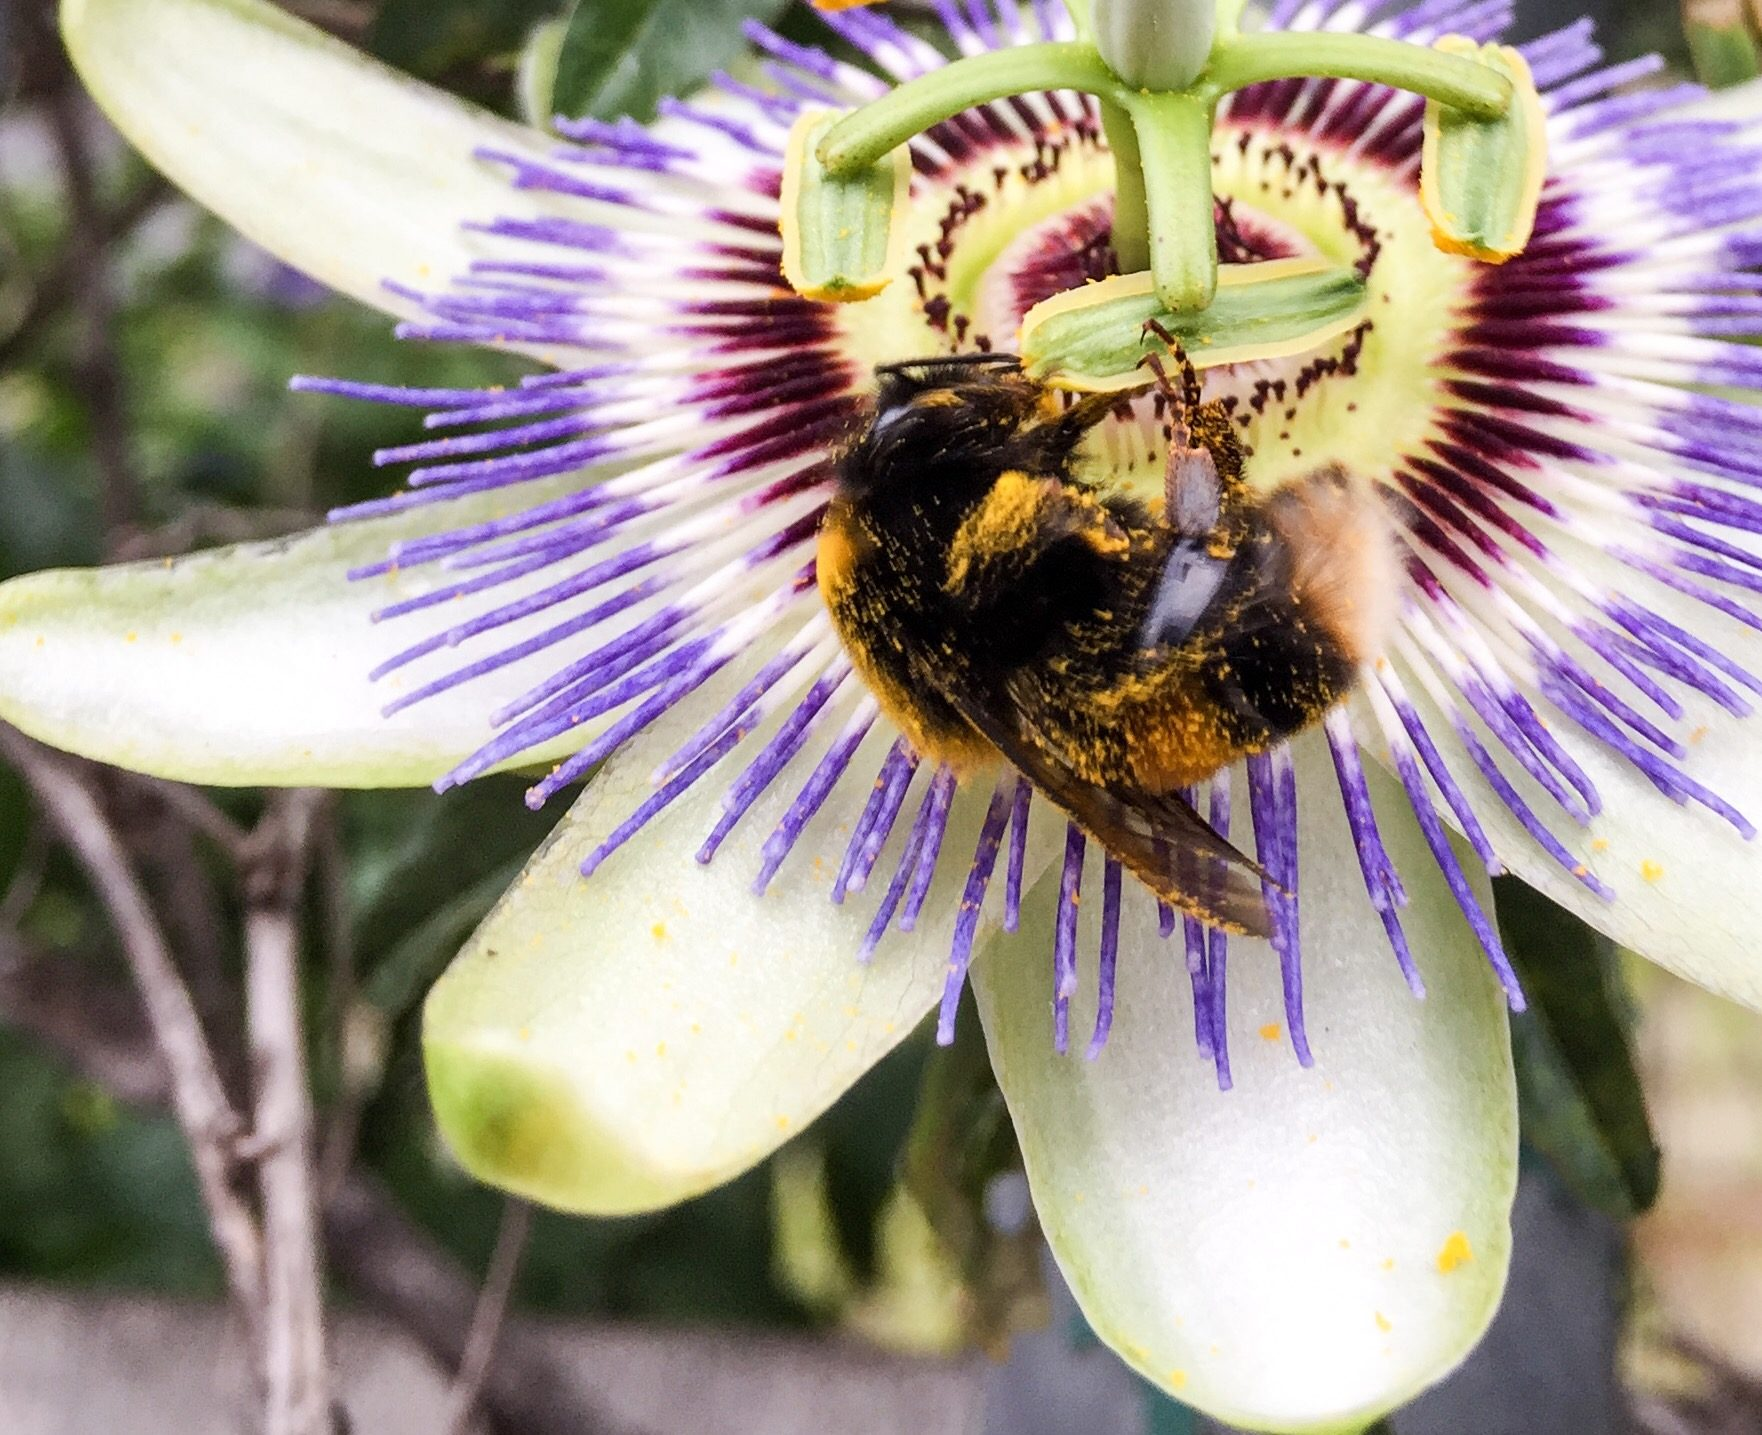 Bumblebee on a Passion flower covered in pollen